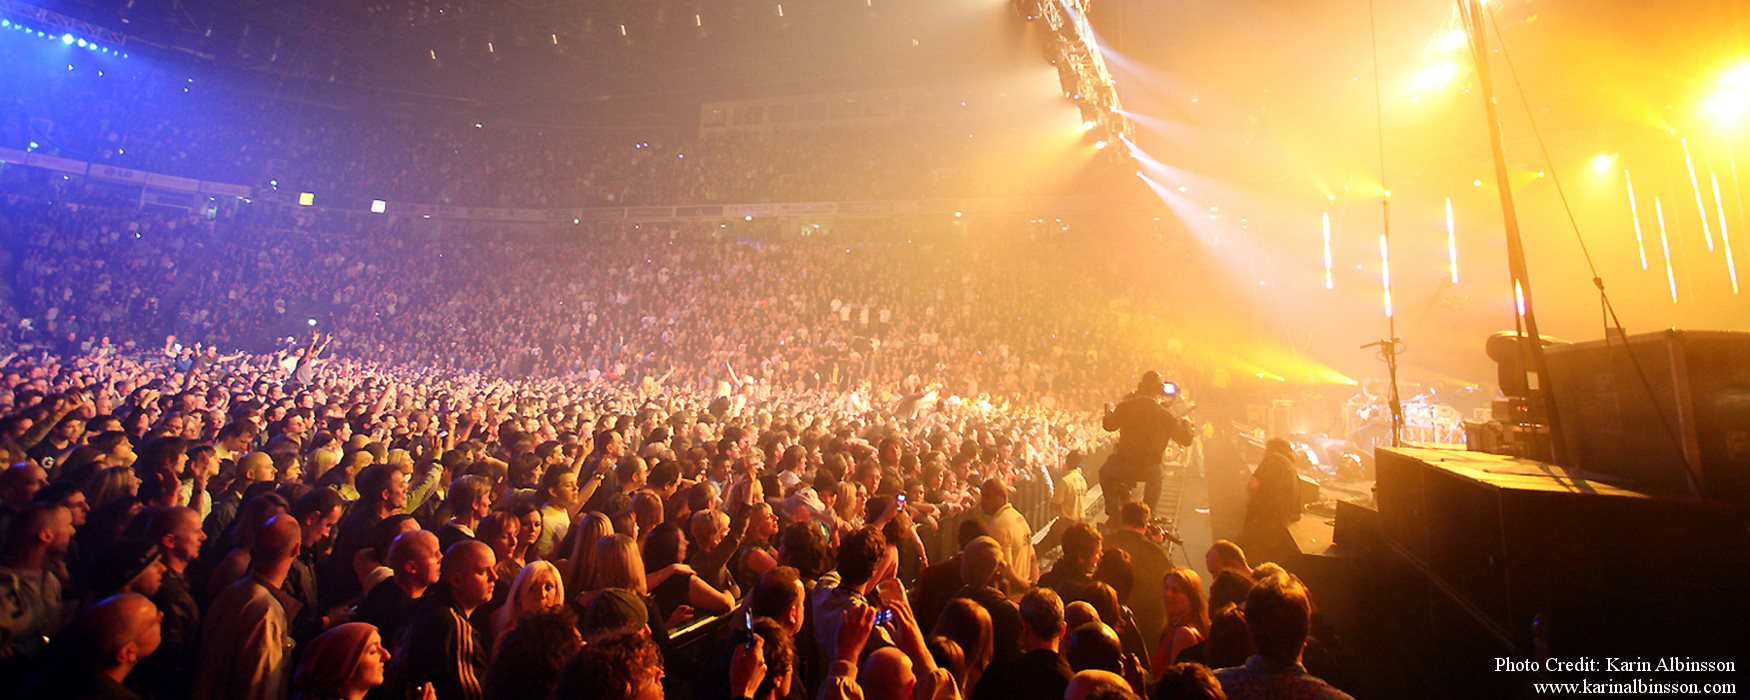 Events at Manchester Arena